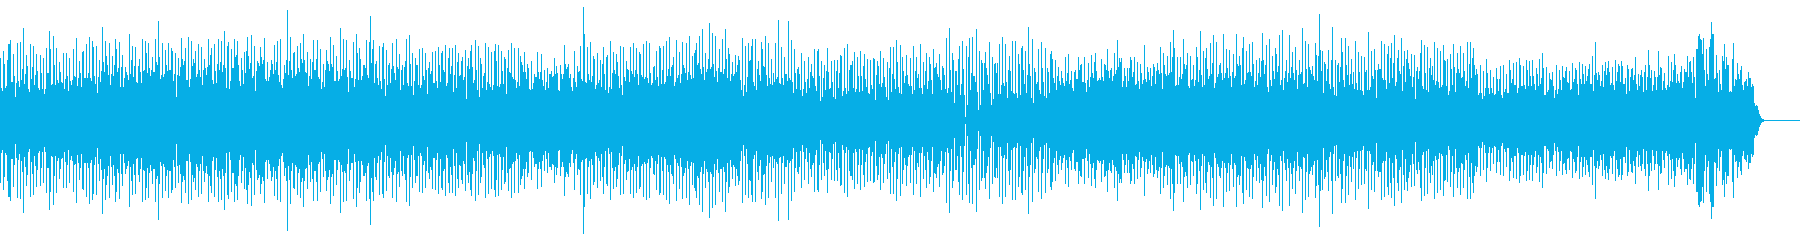 Fashionable and rich melody's reproduced waveform